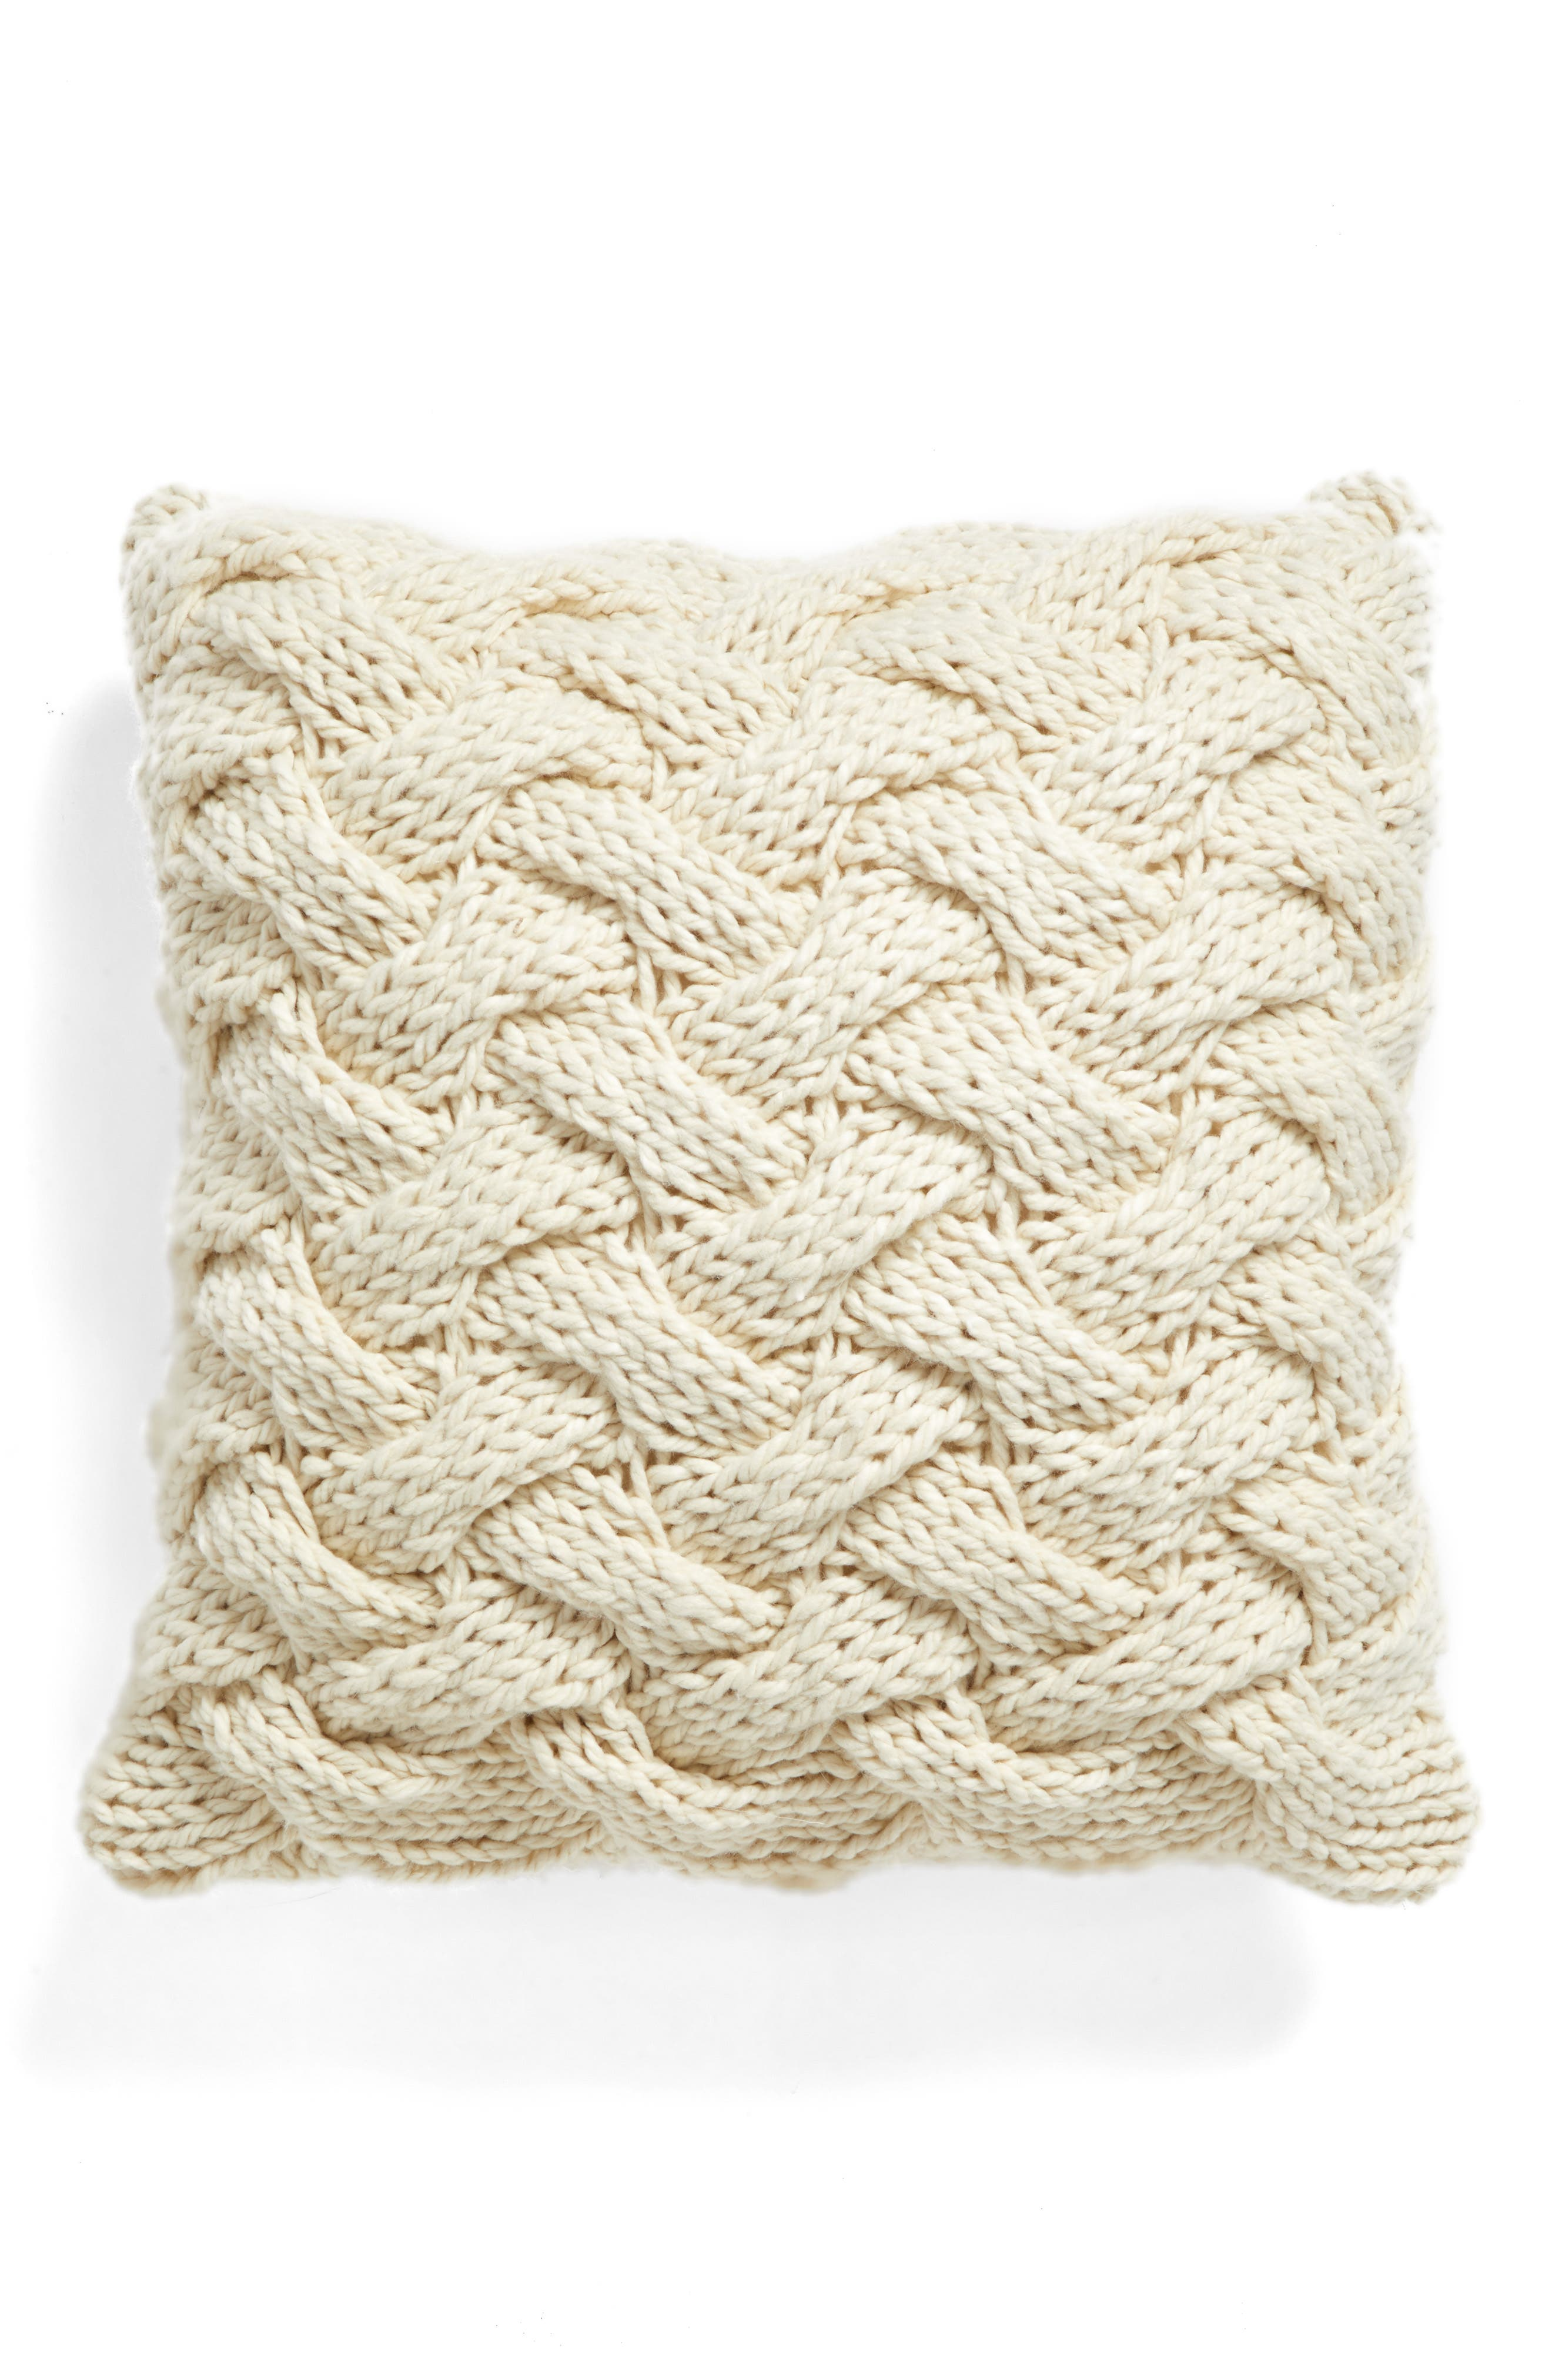 Nordstrom at Home Basket Weave Accent Pillow